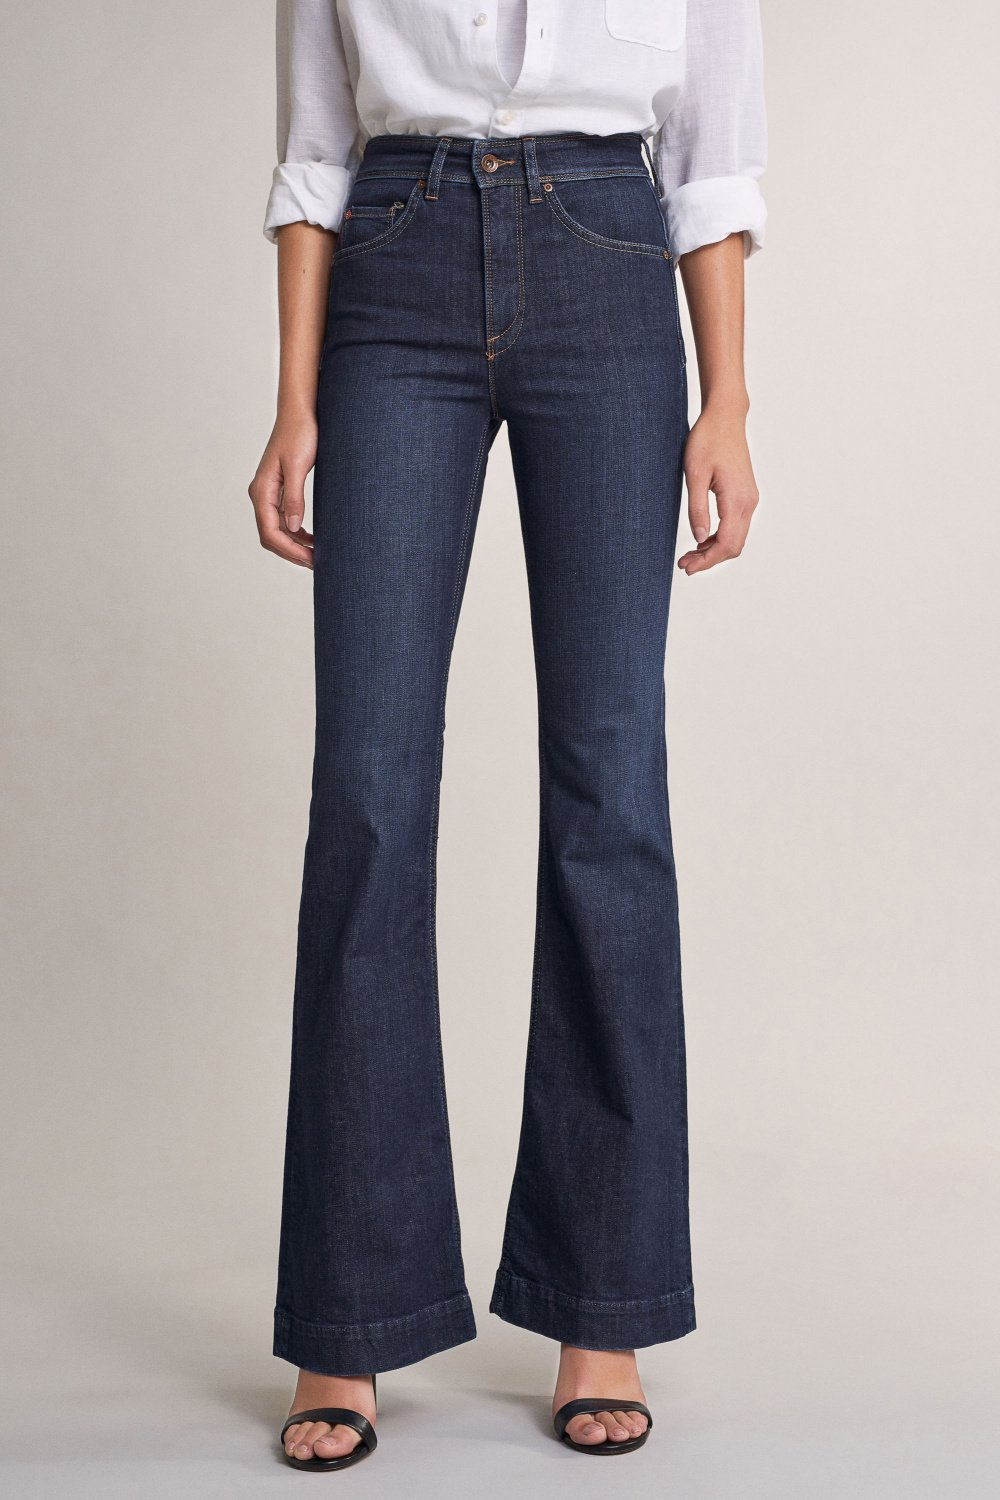 Secret glamour push in flare jeans - Salsa